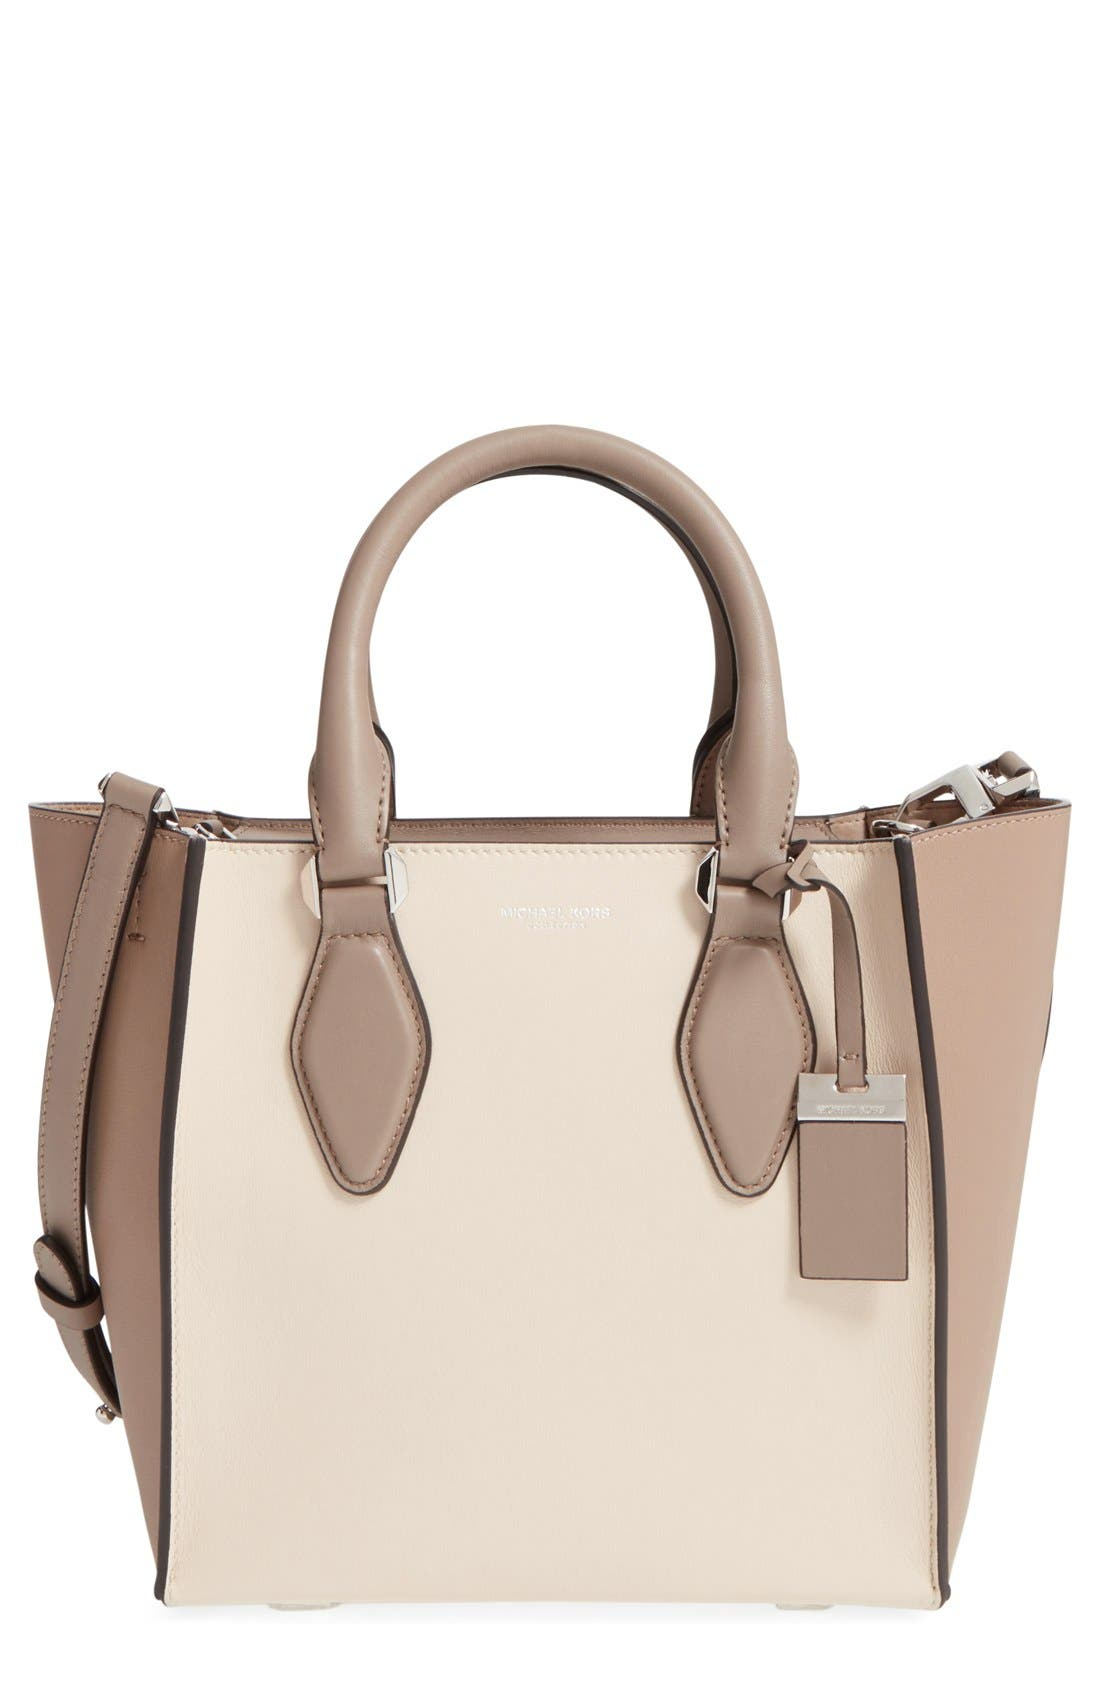 Alternate Image 1 Selected - Michael Kors 'Small Gracie' Leather Tote